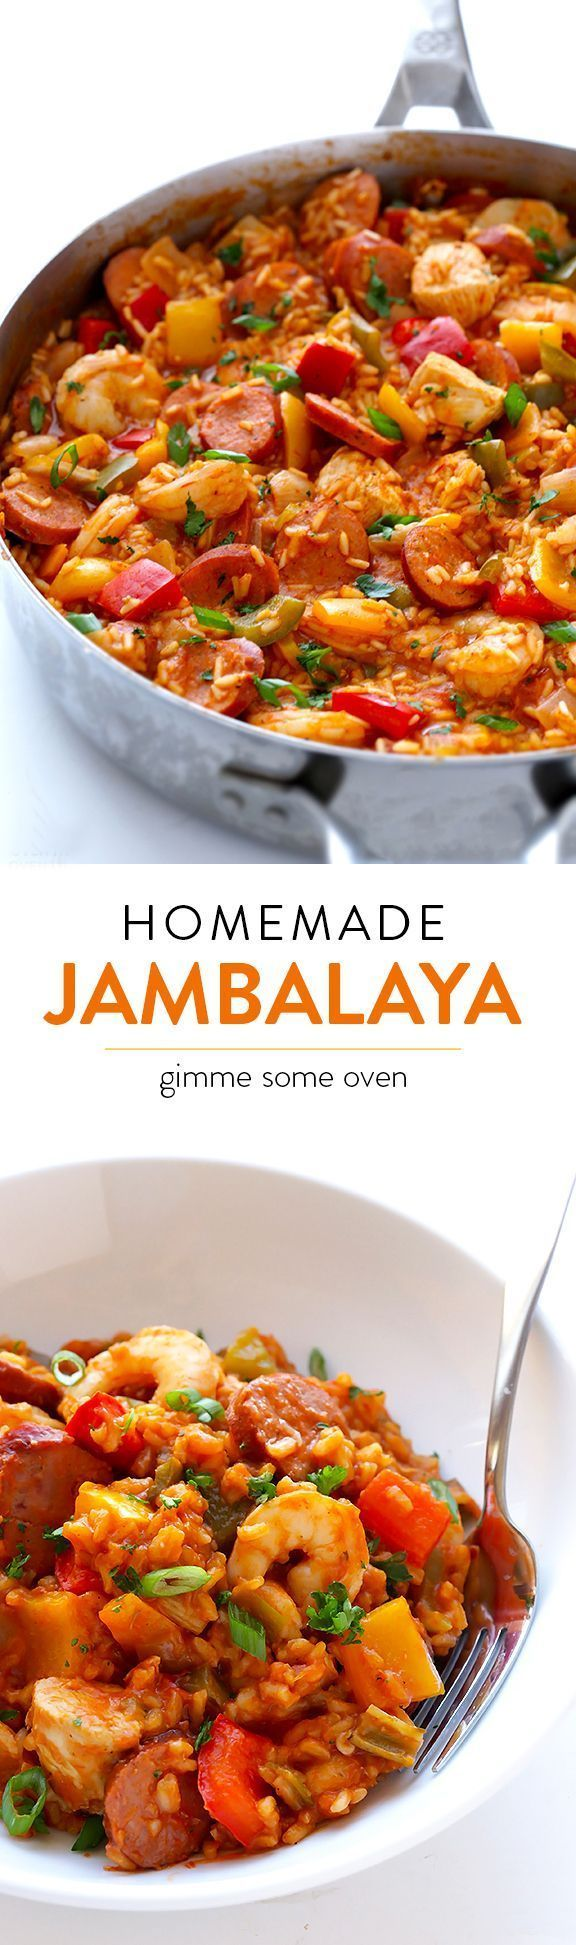 Learn how to make homemade jambalaya with this delicious (and easy!) recipe | http://gimmesomeoven.com